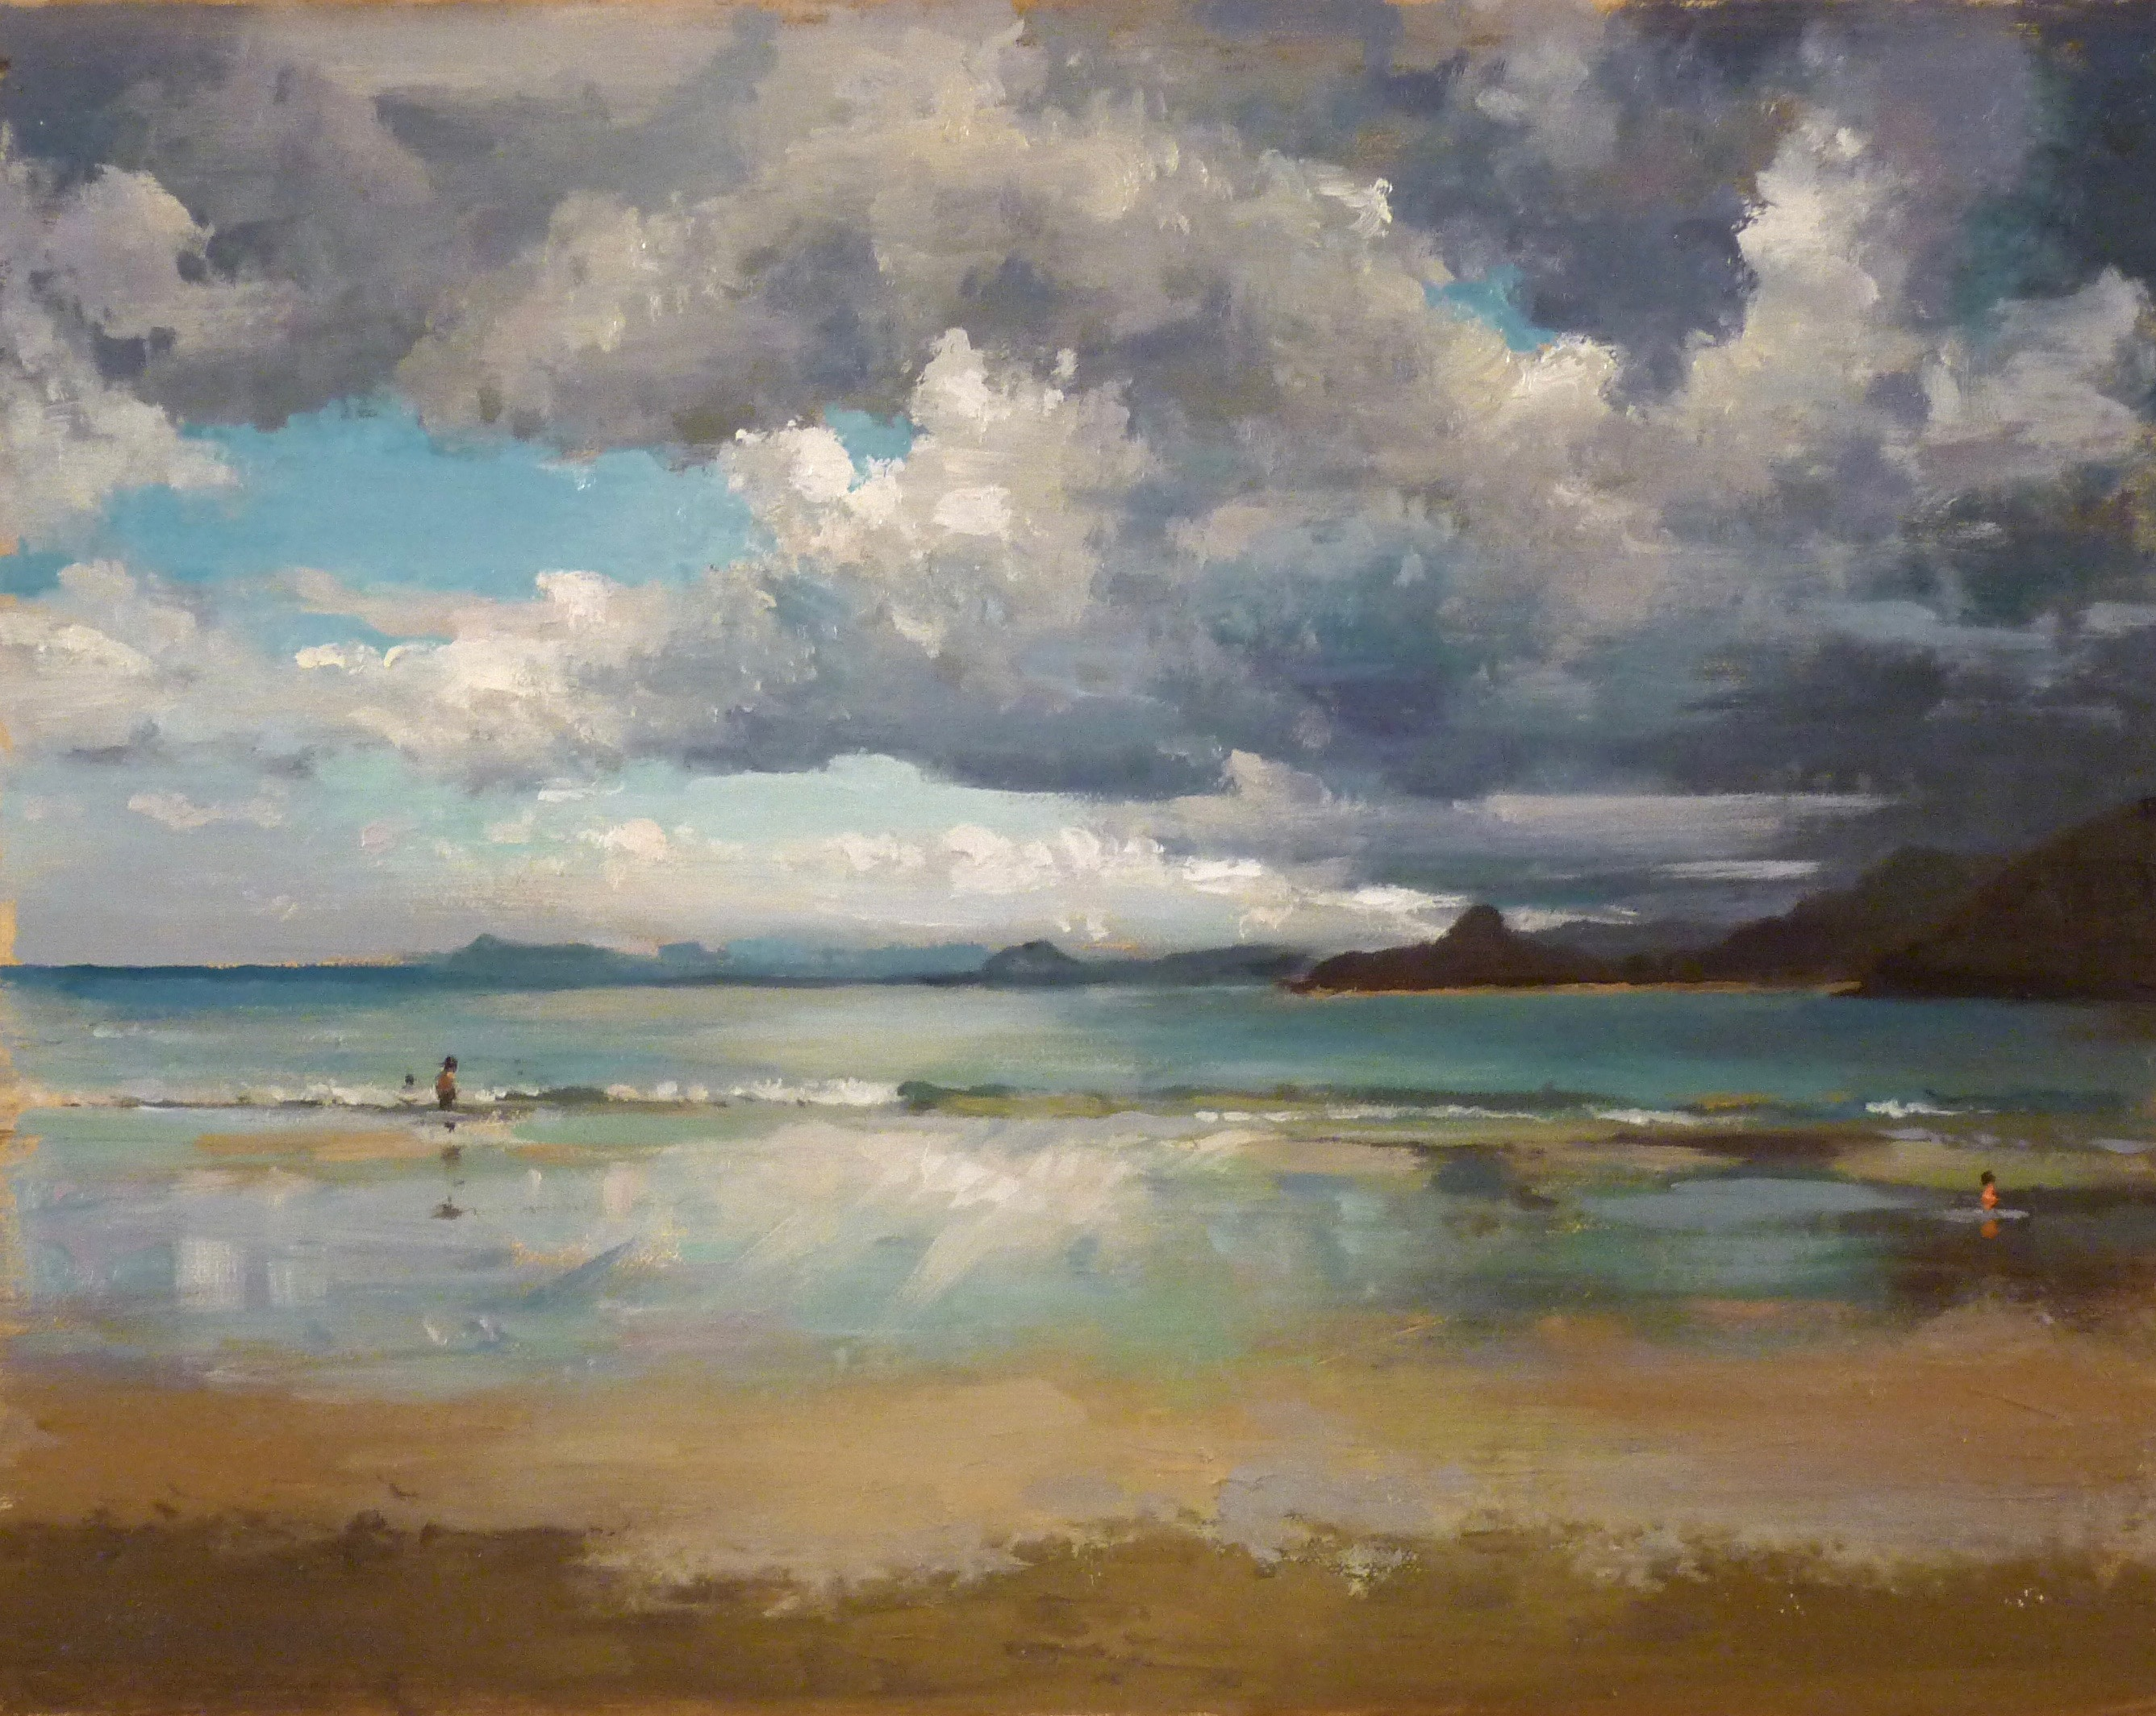 transcending the landscape john a varriano outdoorpainter